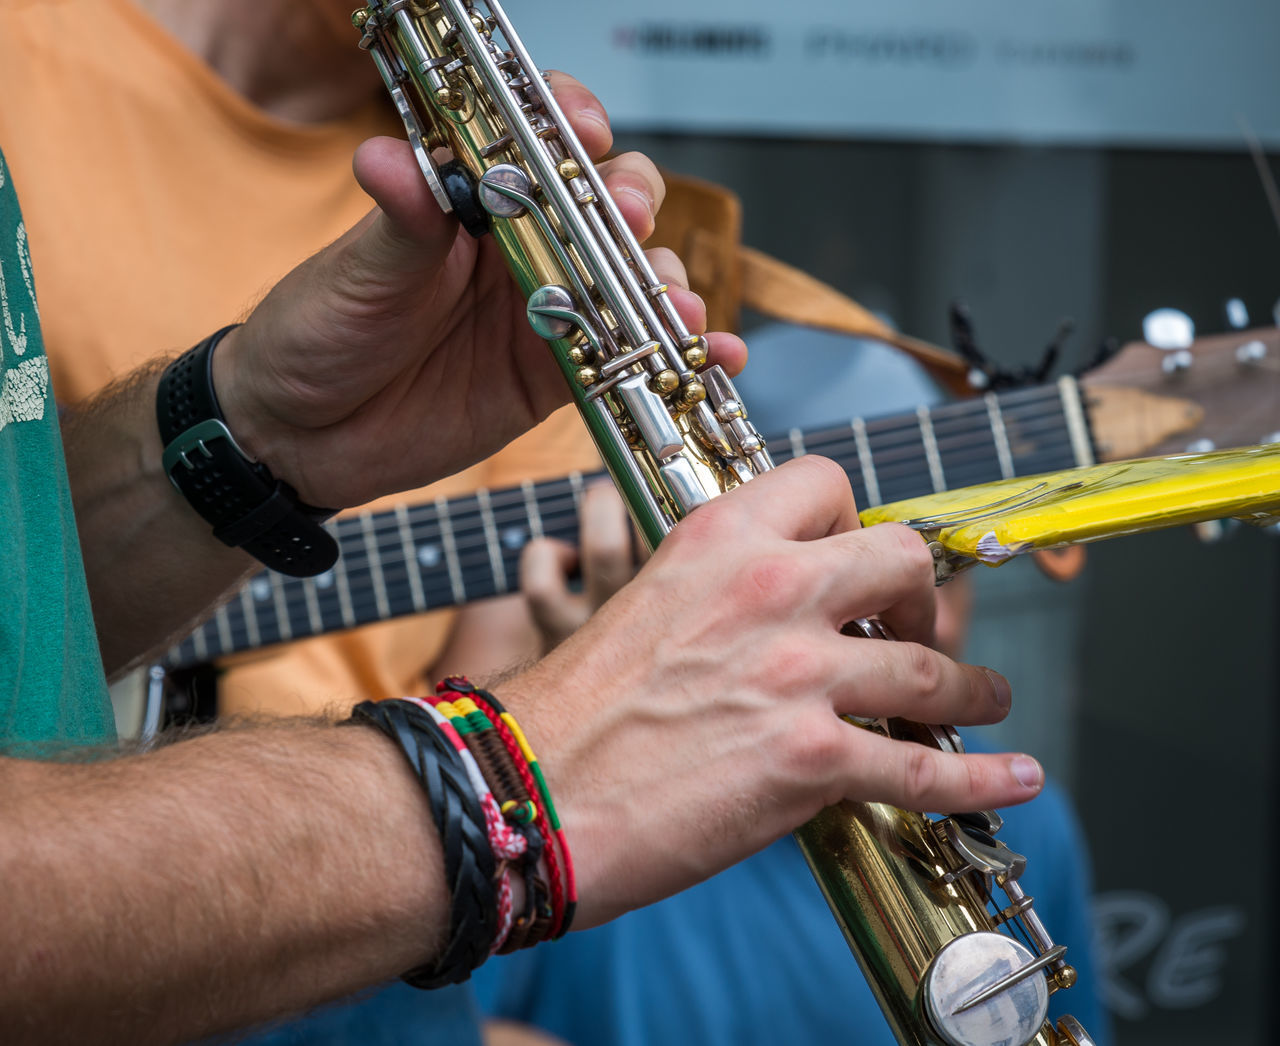 Arts Culture And Entertainment Body Part Close-up Focus On Foreground Human Body Part Human Hand Music Musical Instrument Musician Occupation Performance Playing Plucking An Instrument Practicing Saxophone Saxophonist Skill  TakeoverMusic